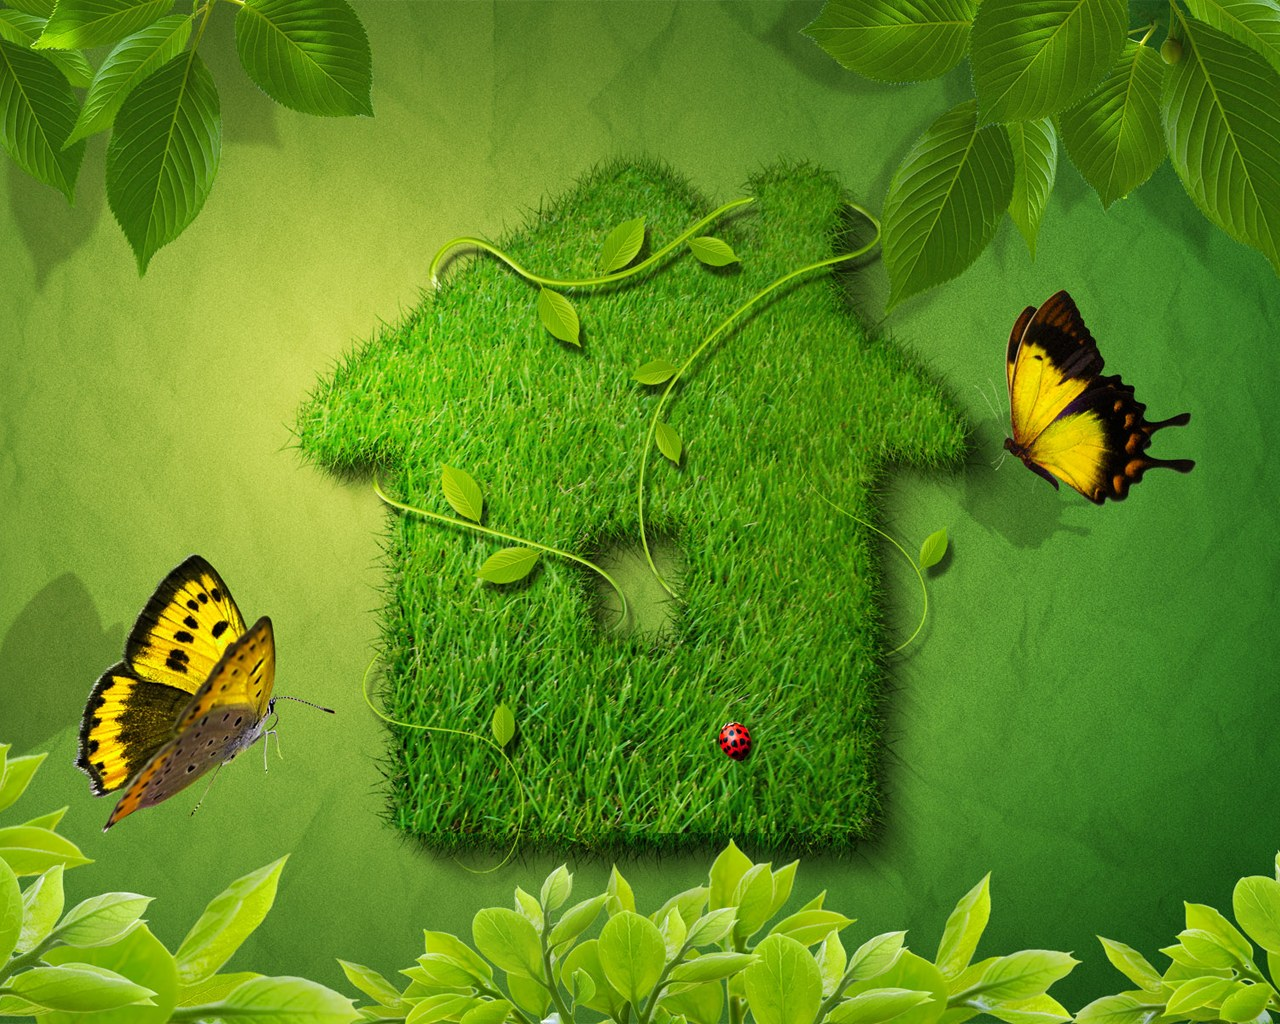 GO GREEN AND SAVE OUR PLANET FOR THE BETTER LIVE IN THE FUTURE.